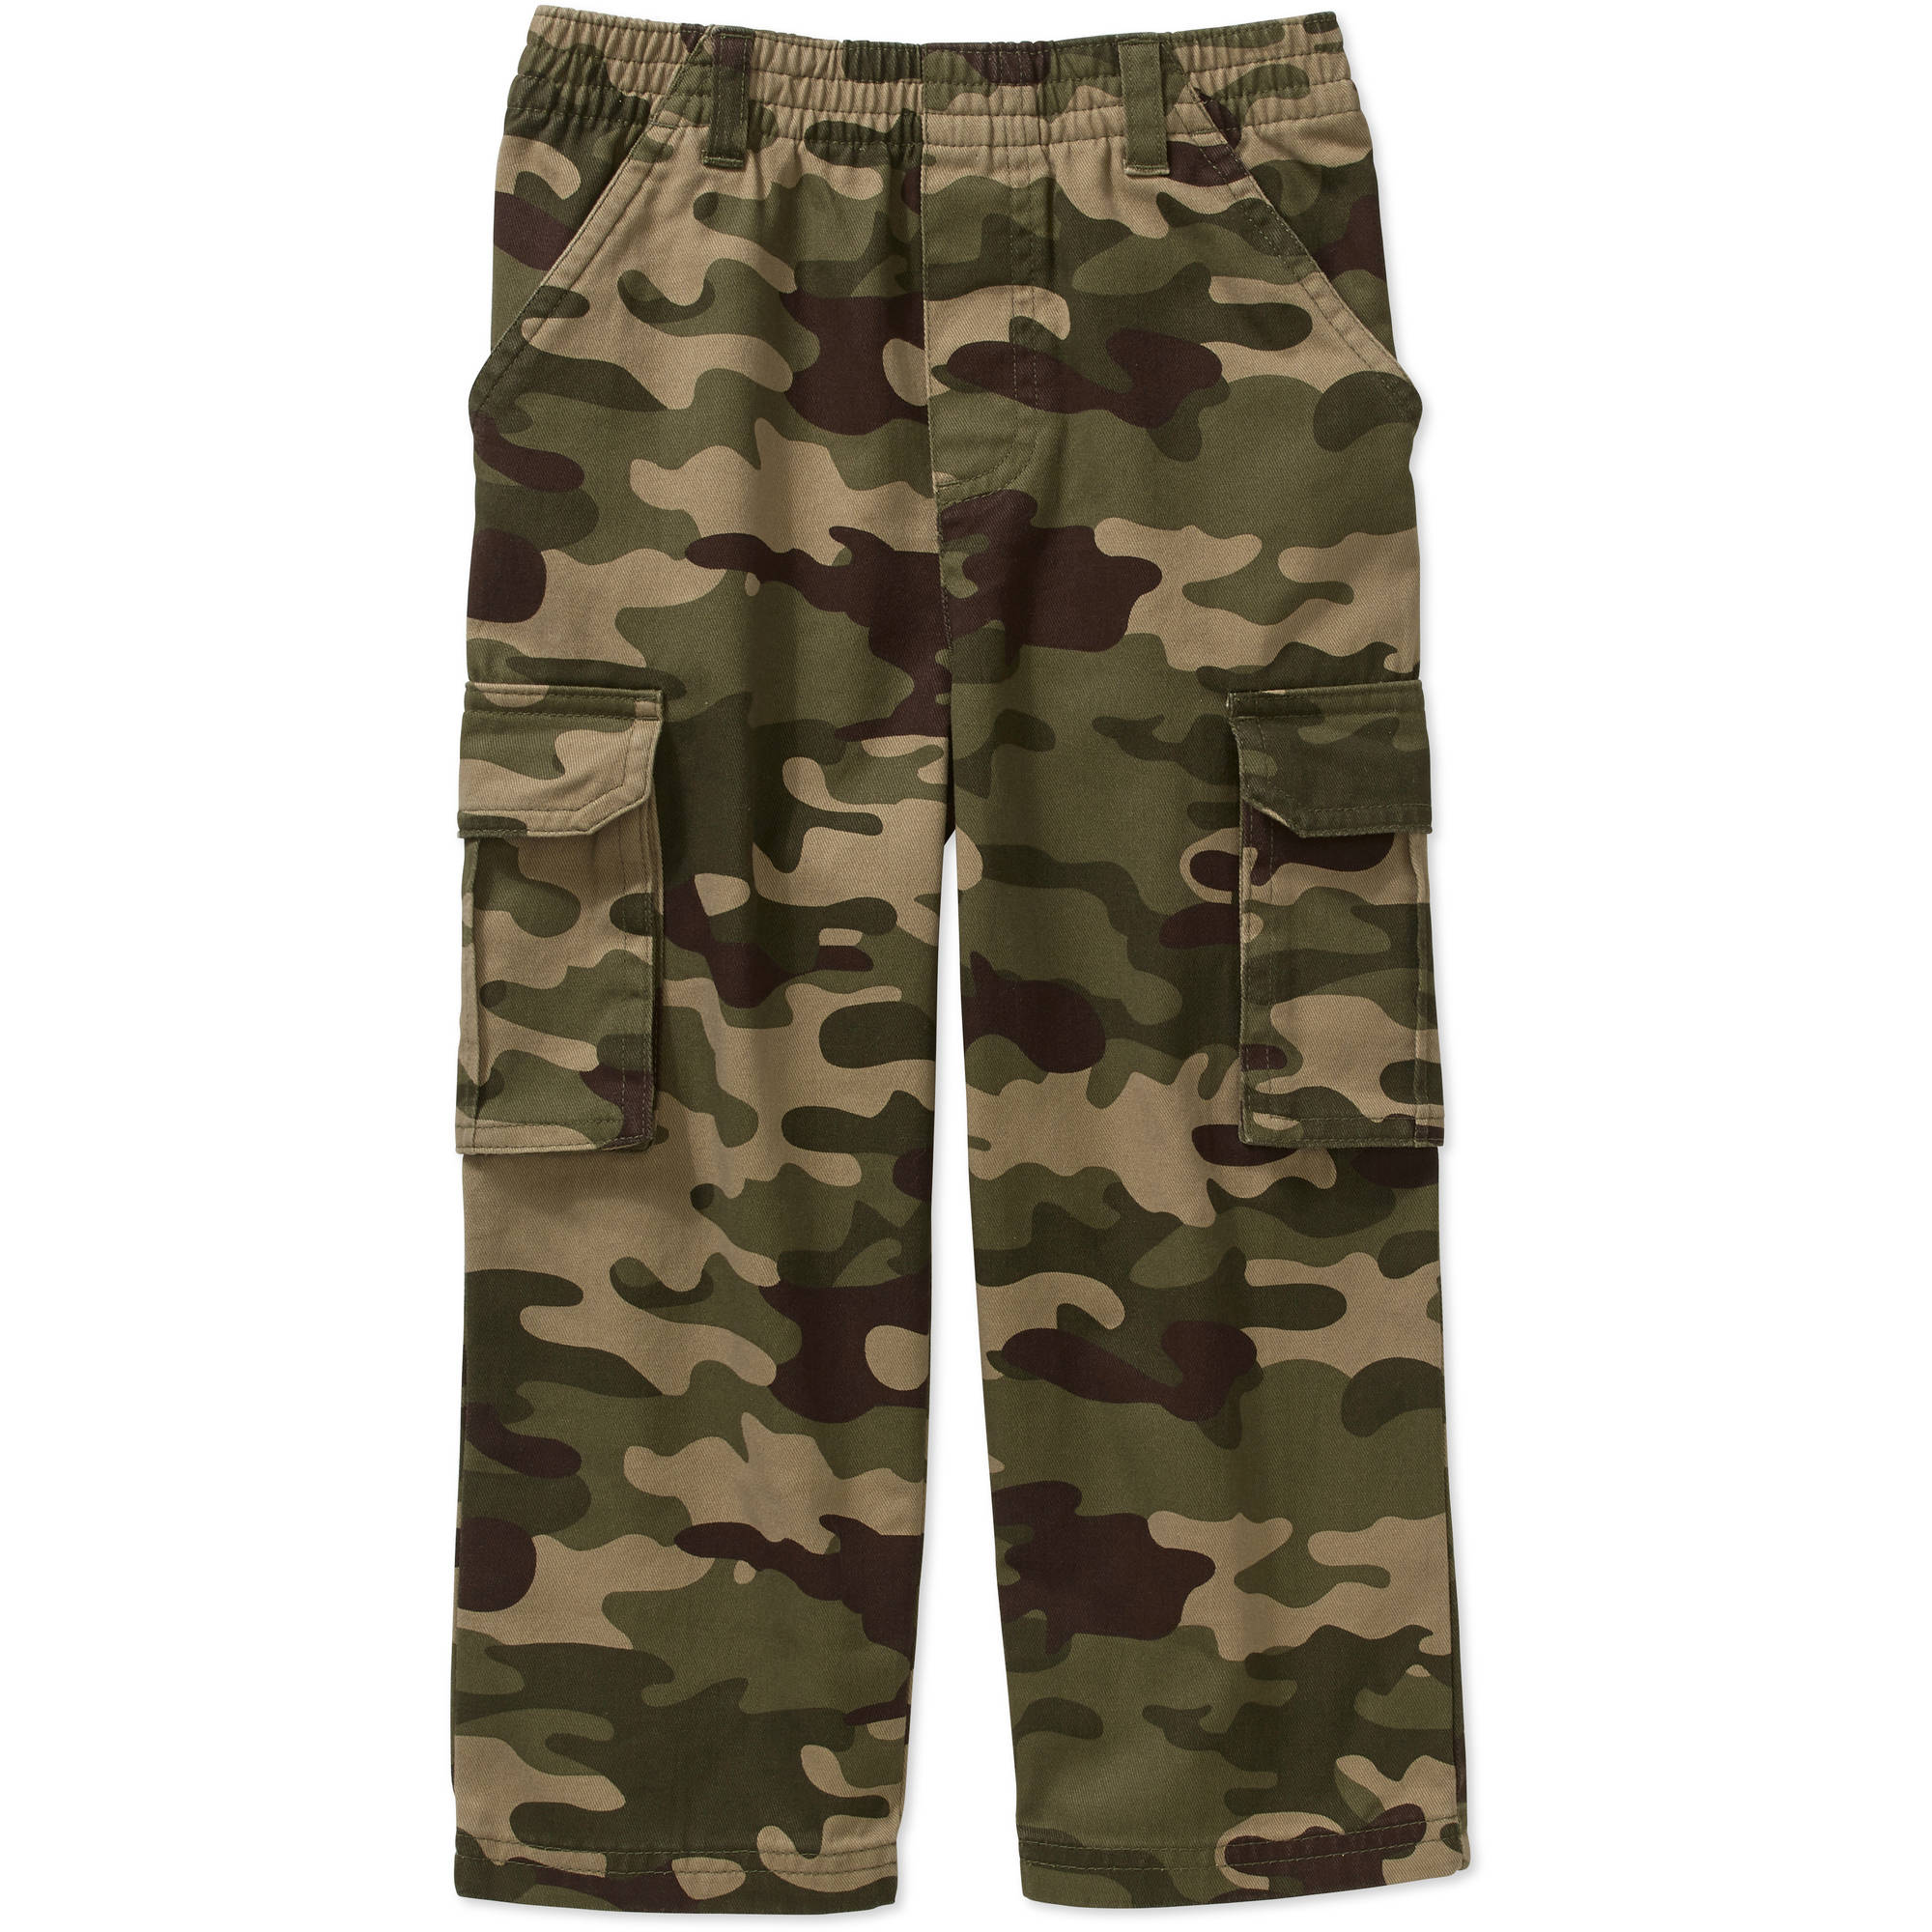 Garanimals Baby Toddler Boy Printed Twill Cargo Pants